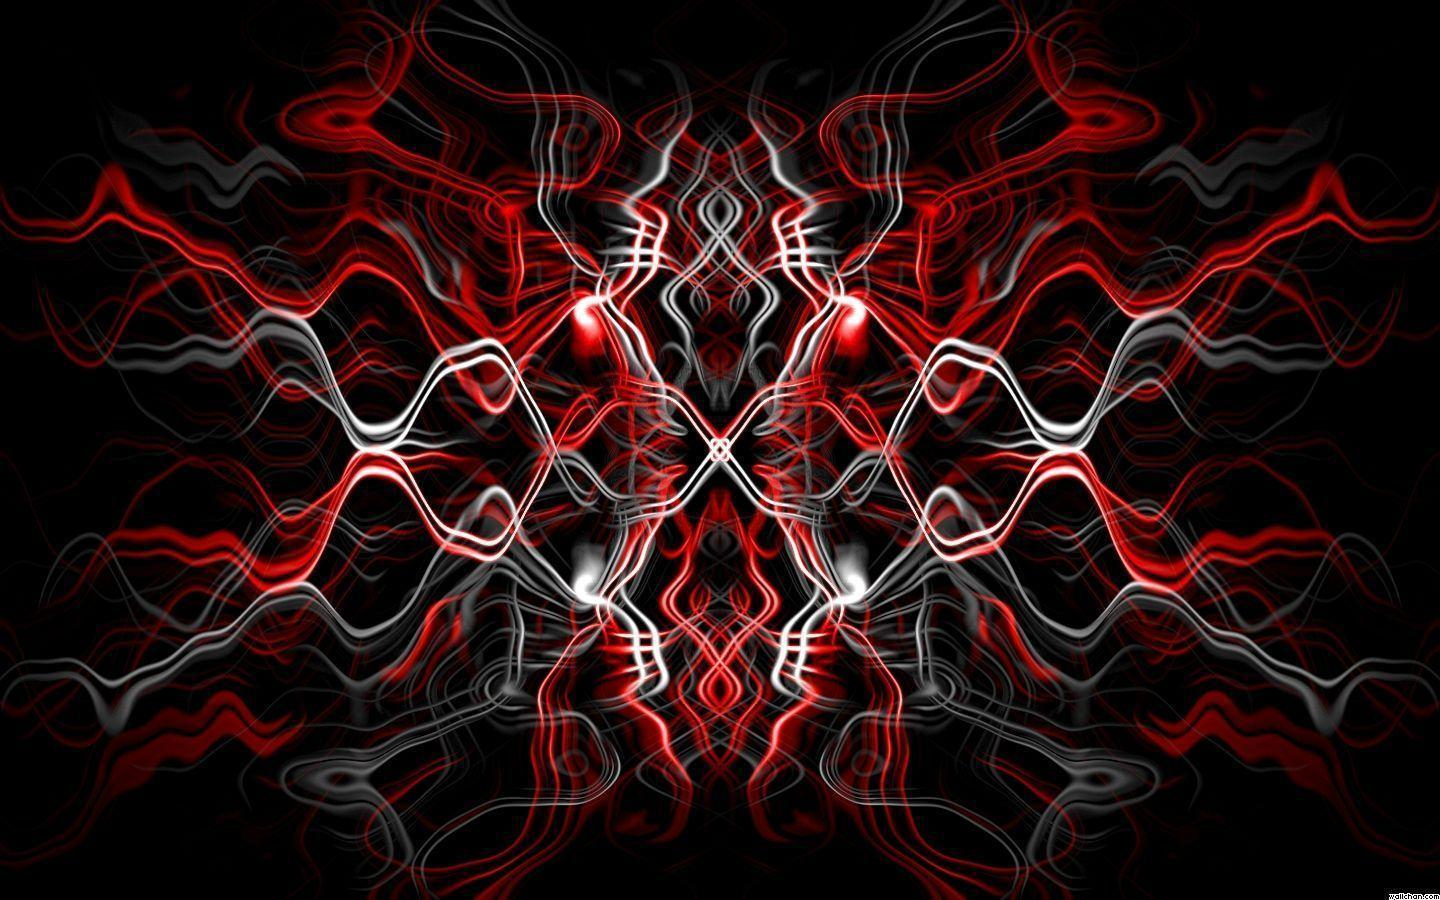 Hd wallpaper red and black - Red And Black Wallpaper 53 206283 Images Hd Wallpapers Wallfoy Com